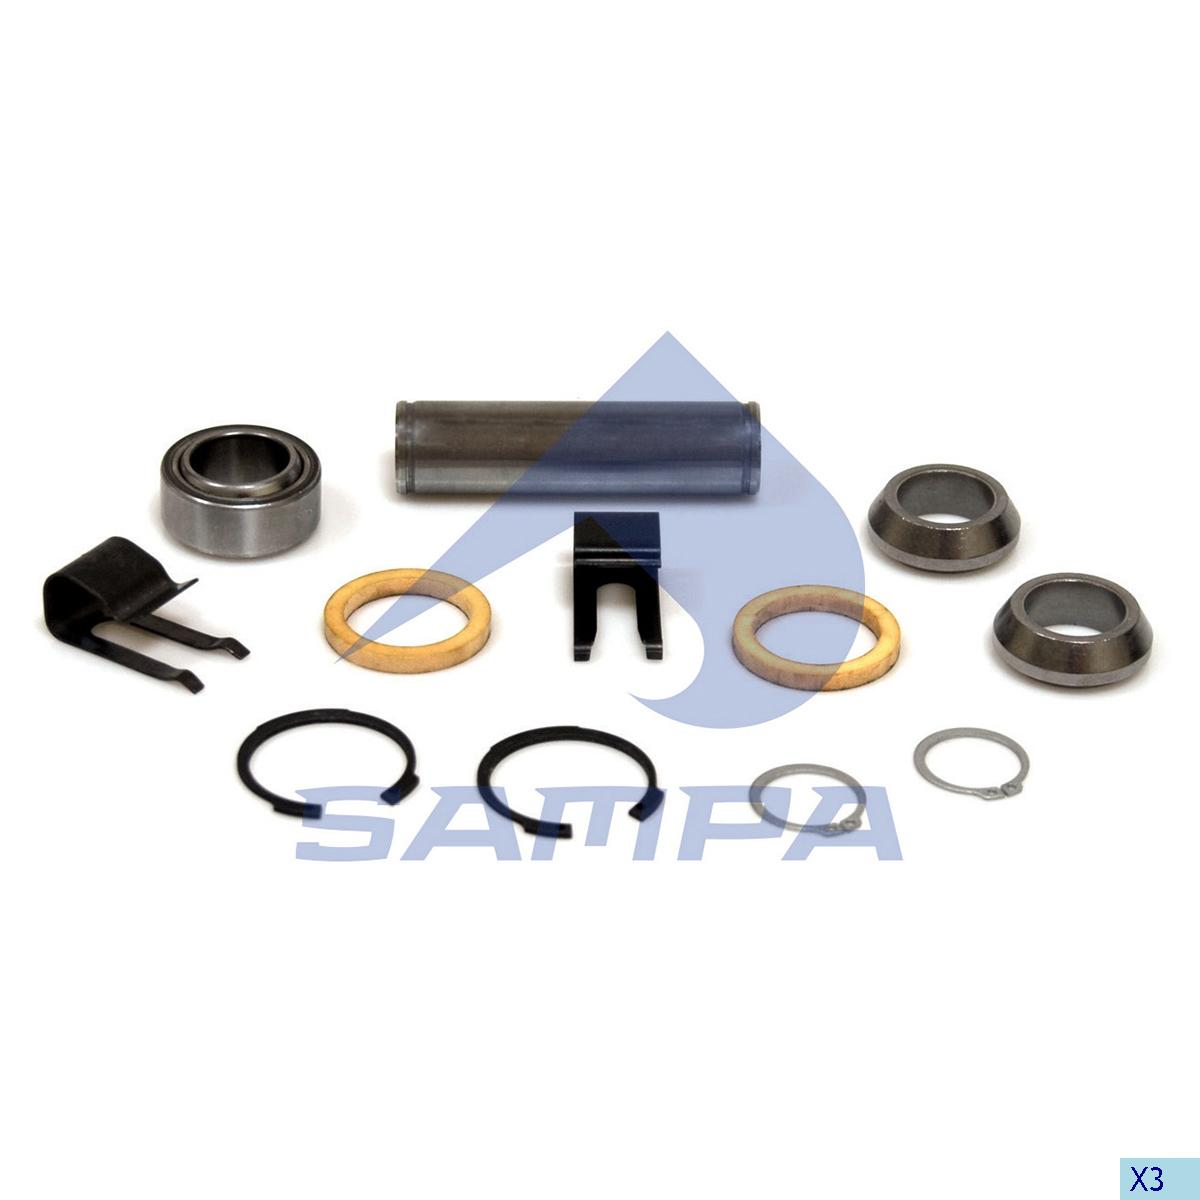 Repair Kit, Clutch Fork, Man, Clutch